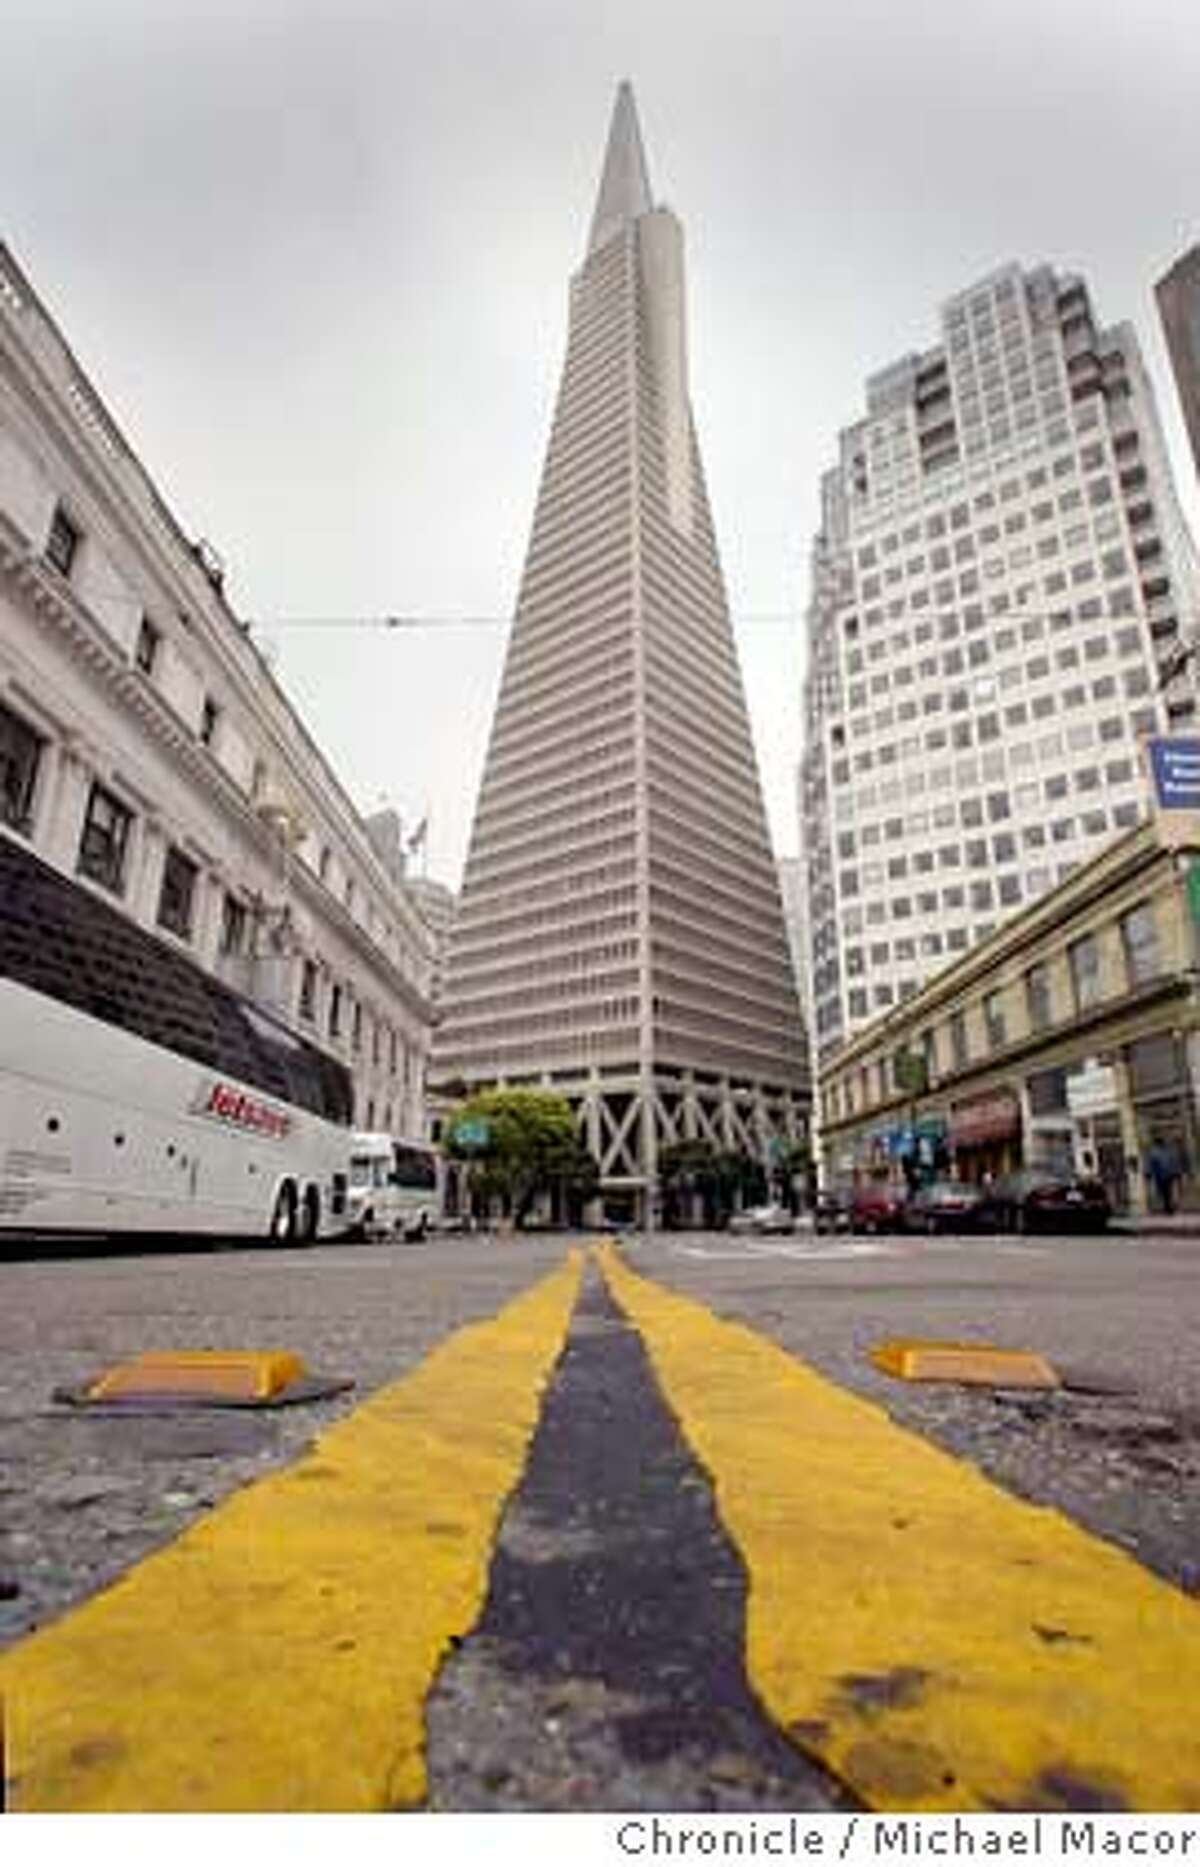 transamerica170_mac.jpg A view from the middle of Columbus Ave. The Transamerica Pyramid, a San Francisco icon. event on 5/26/04 in San Francisco Michael Macor / San Francisco Chronicle Above: San Francisco's iconic Transamerica Pyramid is viewed from the middle of Columbus Ave. Top: Utility engineer Rafael Ramirez inspects the Pyramid's crown jewel, a 6,000-watt halogen beacon that can be seen throughout the Bay Area. Above: San Francisco's iconic Transamerica Pyramid is viewed from the middle of Columbus Street. Top: Utility engineer Rafael Ramirez inspects the Pyramid's crown jewel, a 6,000-watt halogen beacon that can be seen throughout the Bay Area. The Transamerica Pyramid as seen from the middle of Columbus Avenue in San Francisco. Mandatory Credit For Photographer and SF Chronicle/ - Magazines Out Datebook#Datebook#Chronicle#11/04/2004#ALL#Advance##0421786856